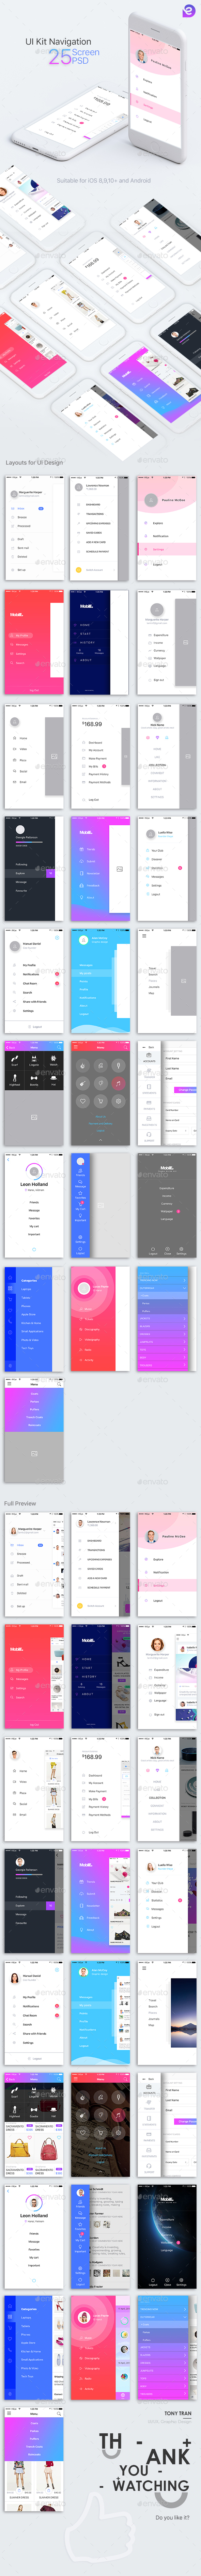 Hoop Ui kit Mobile (User Interfaces)